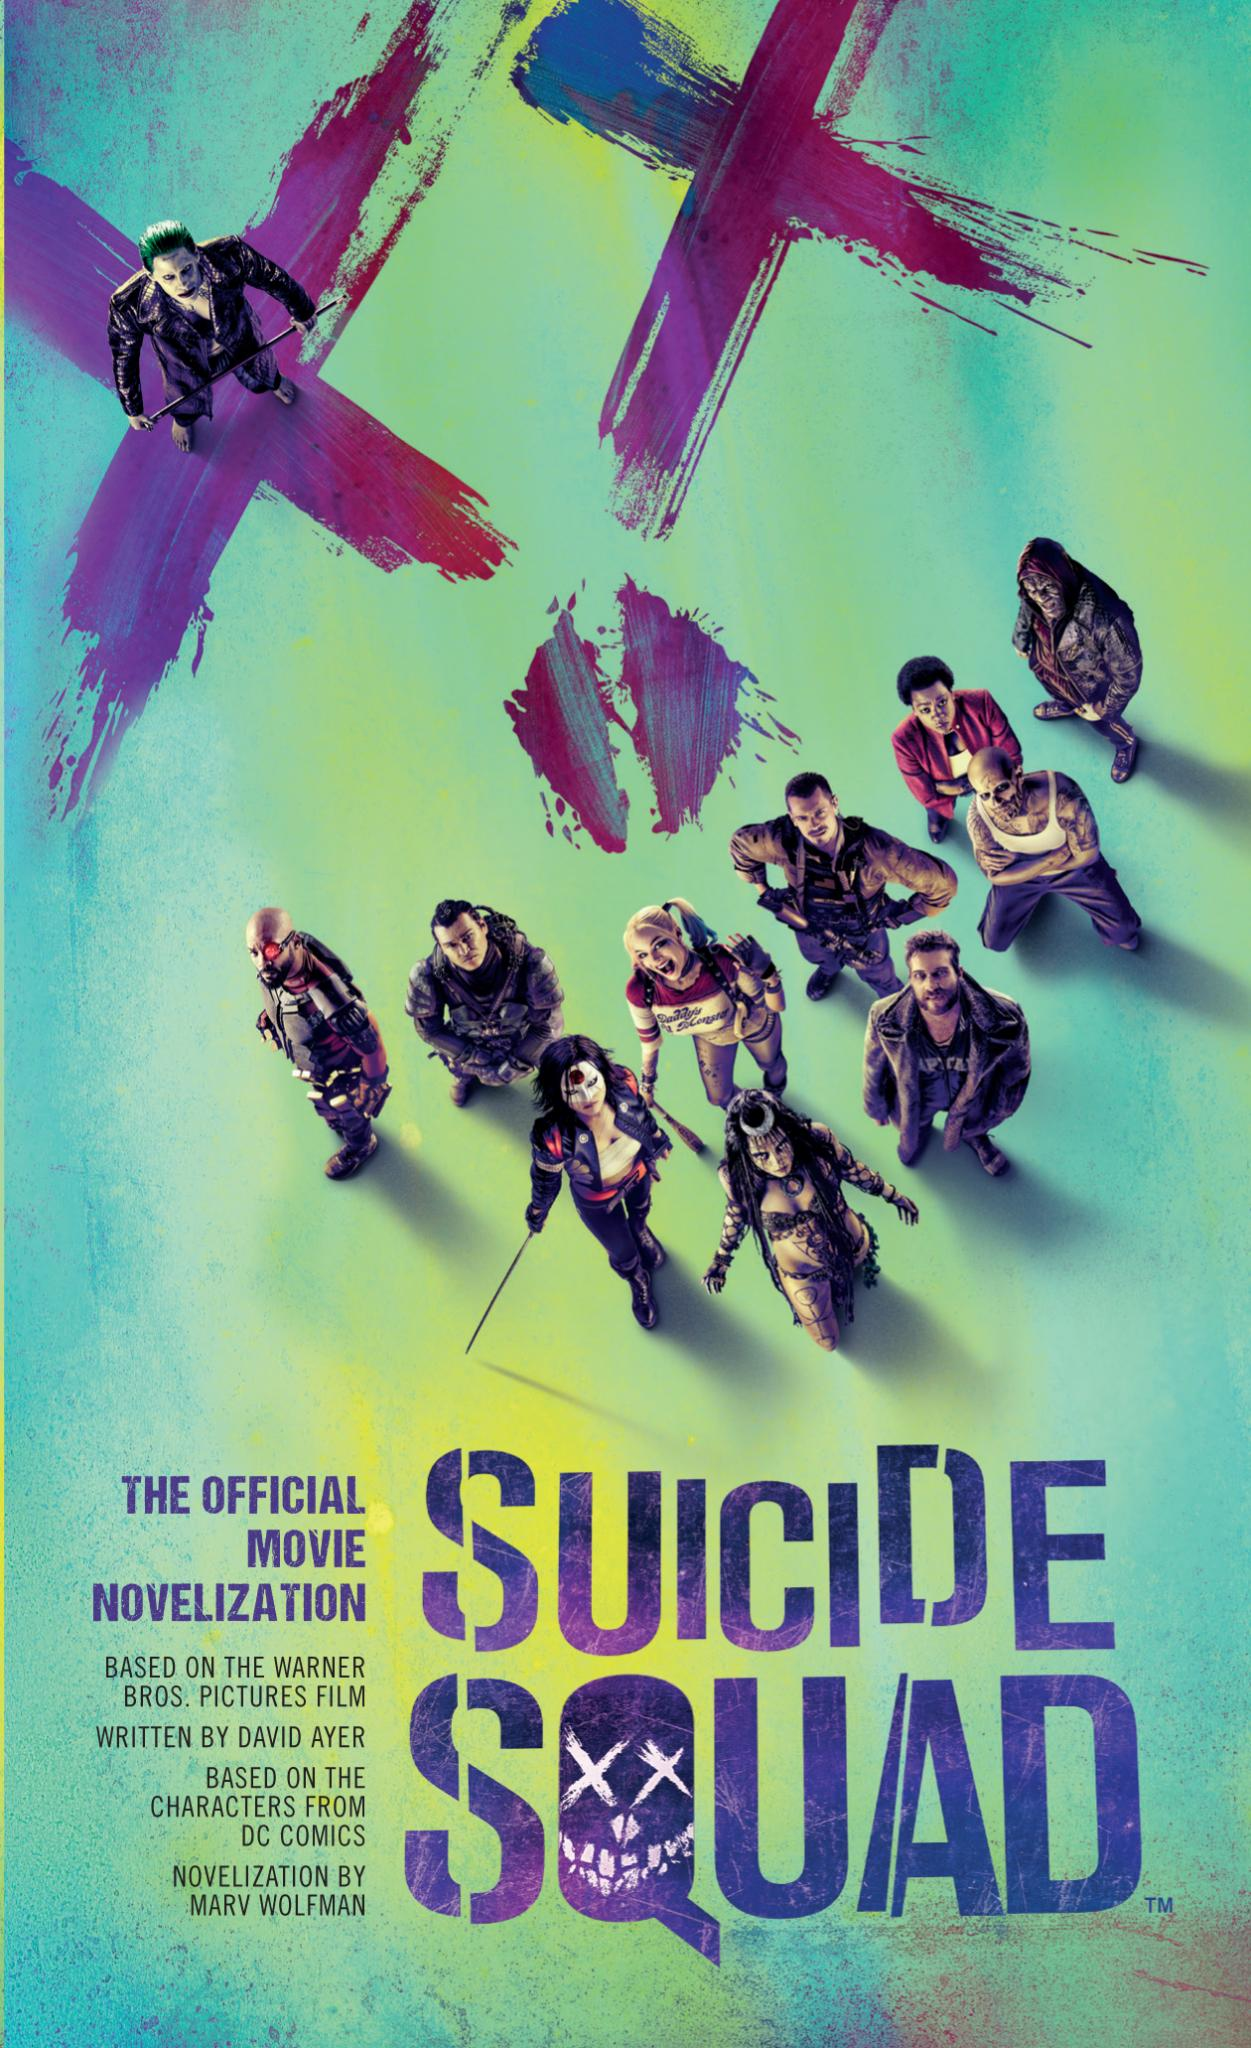 Suicide Squad: The Official Movie Novelization - Book Review